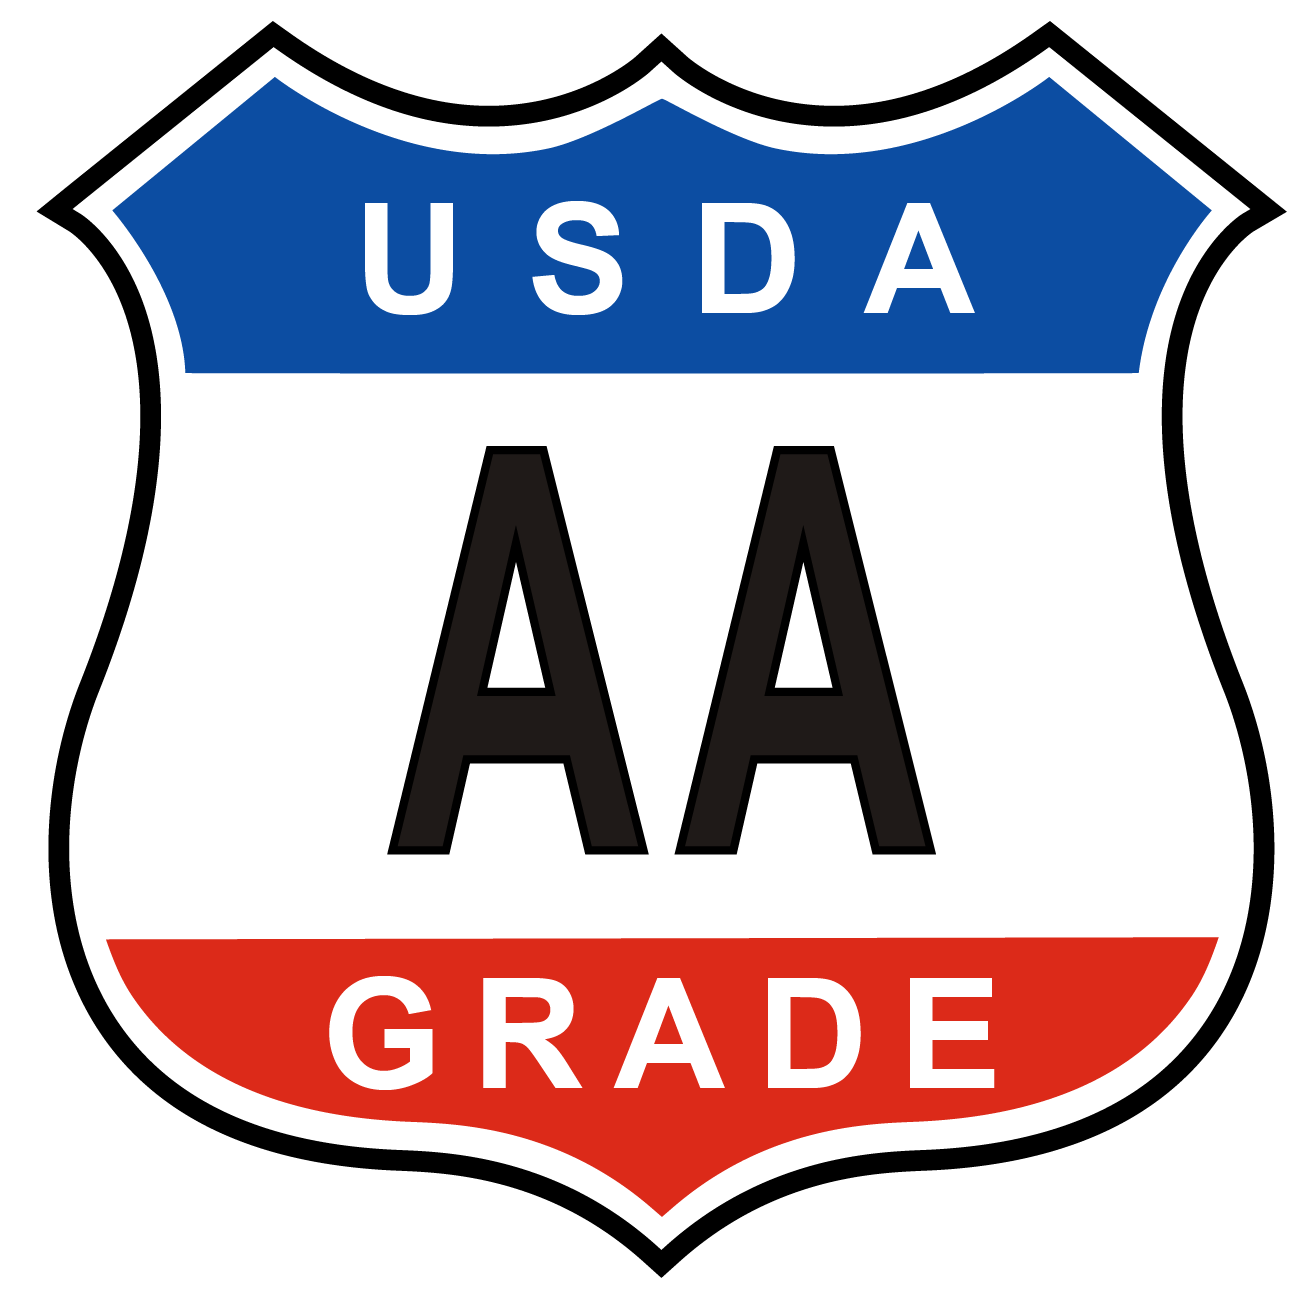 USDA AA Gradeshield